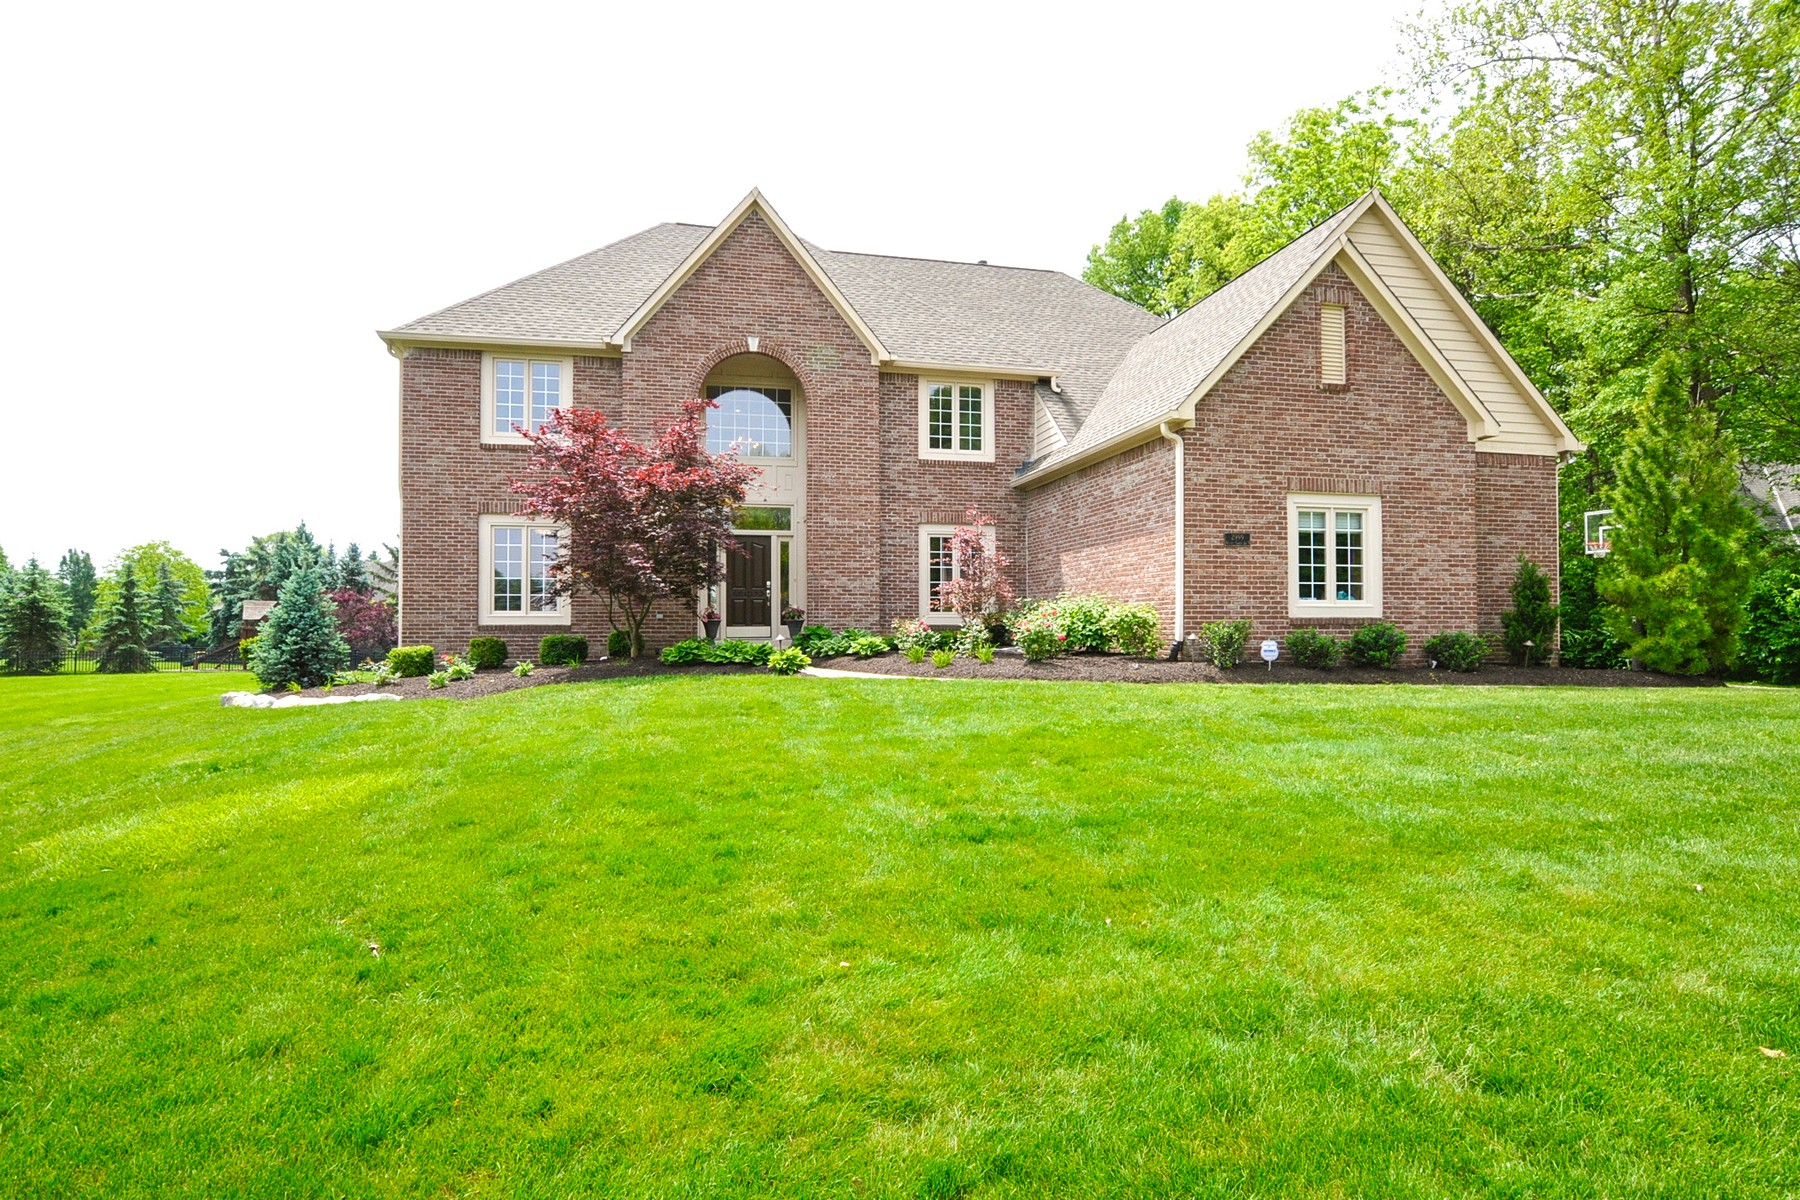 Additional photo for property listing at Beautifully Updated Home 2999 Walnut Creek Drive Carmel, Indiana 46032 Estados Unidos